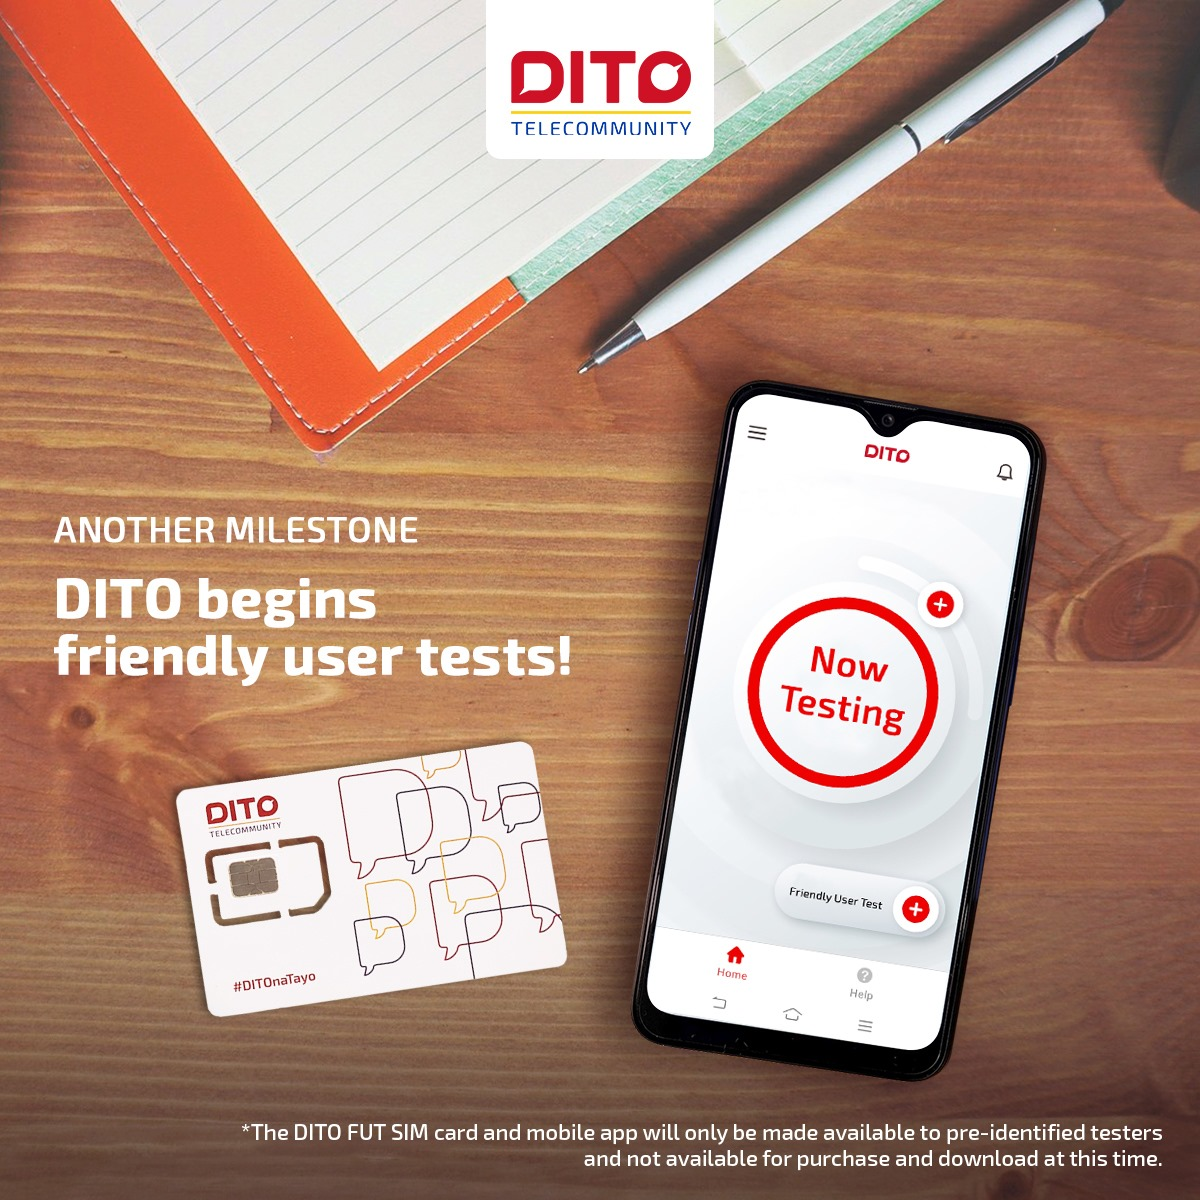 DITO Telecom Sim Card and Mobile App